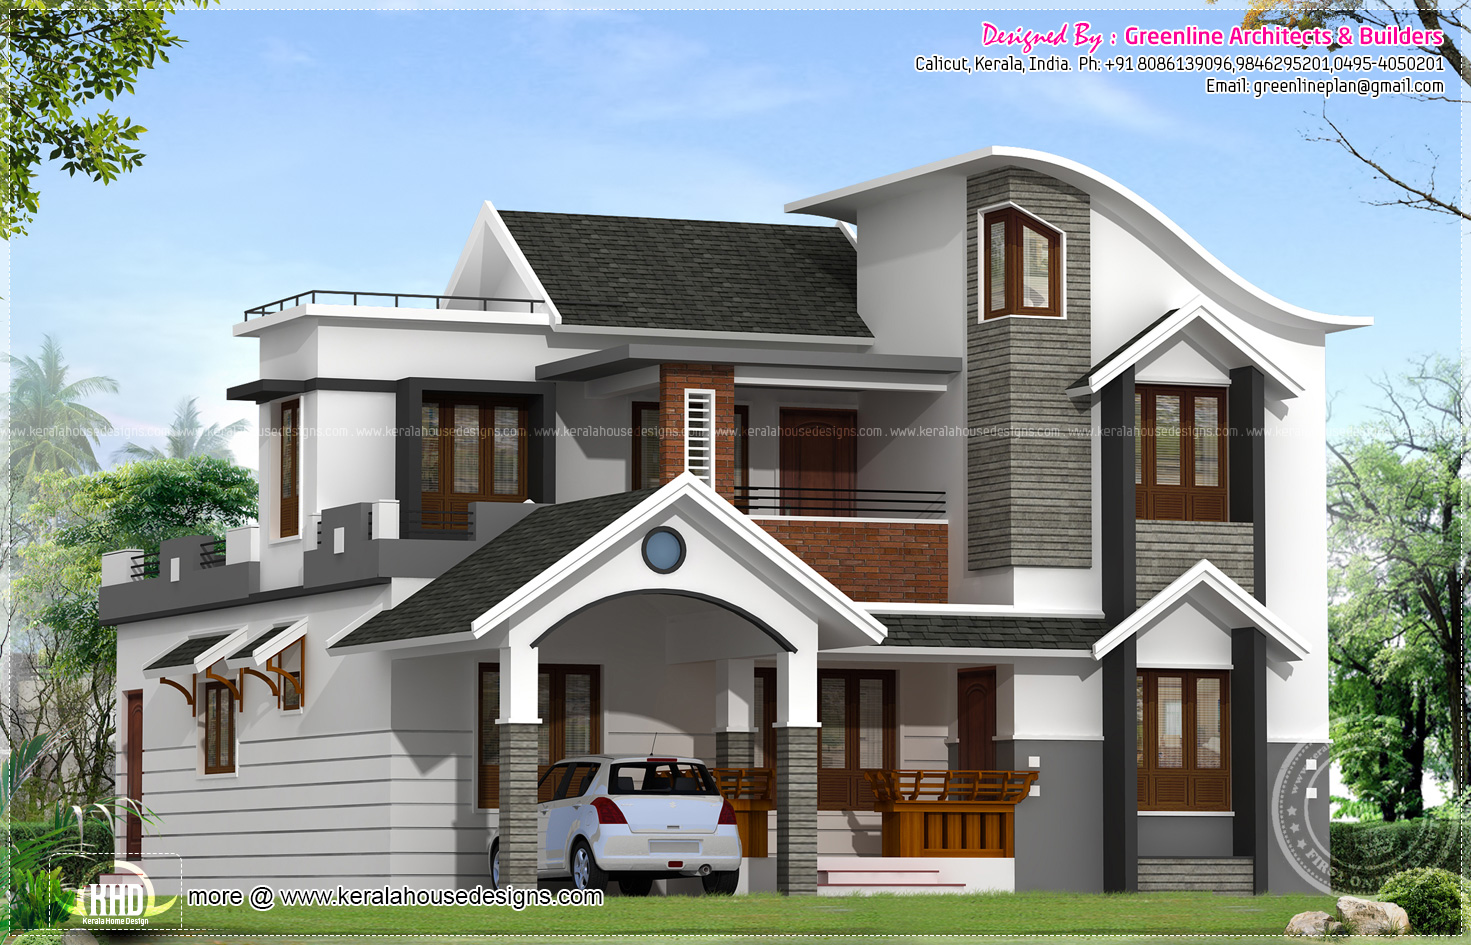 May 2013 kerala home design and floor plans - Modern house designs ...